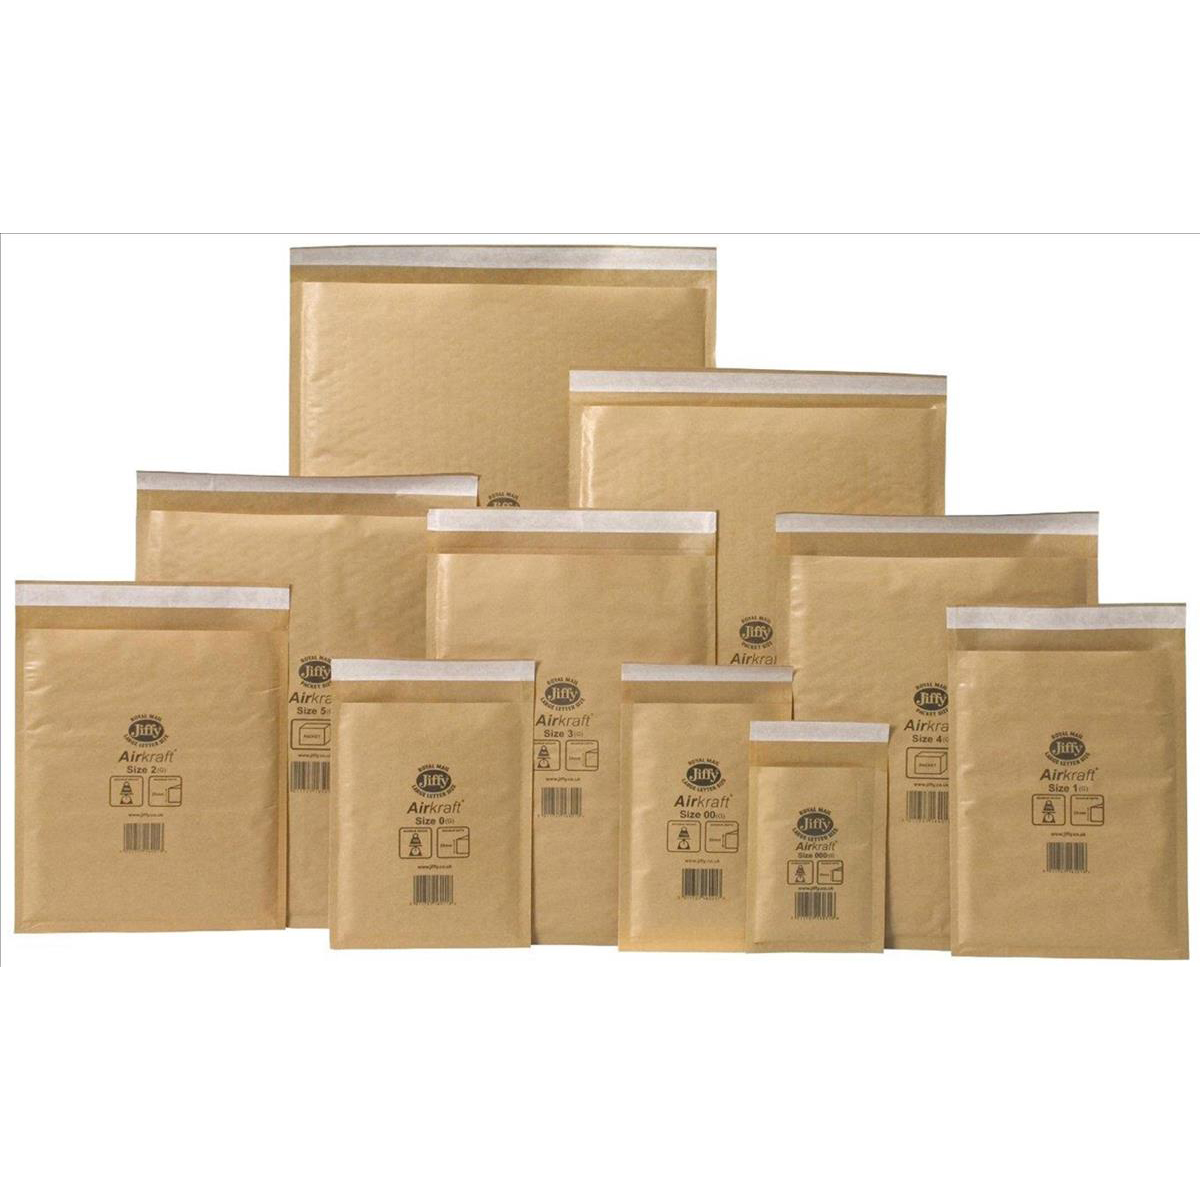 Jiffy Airkraft Bubble Bag Envelopes Size 8 450x650mm Gold Ref MAKC04221 [Pack 50]